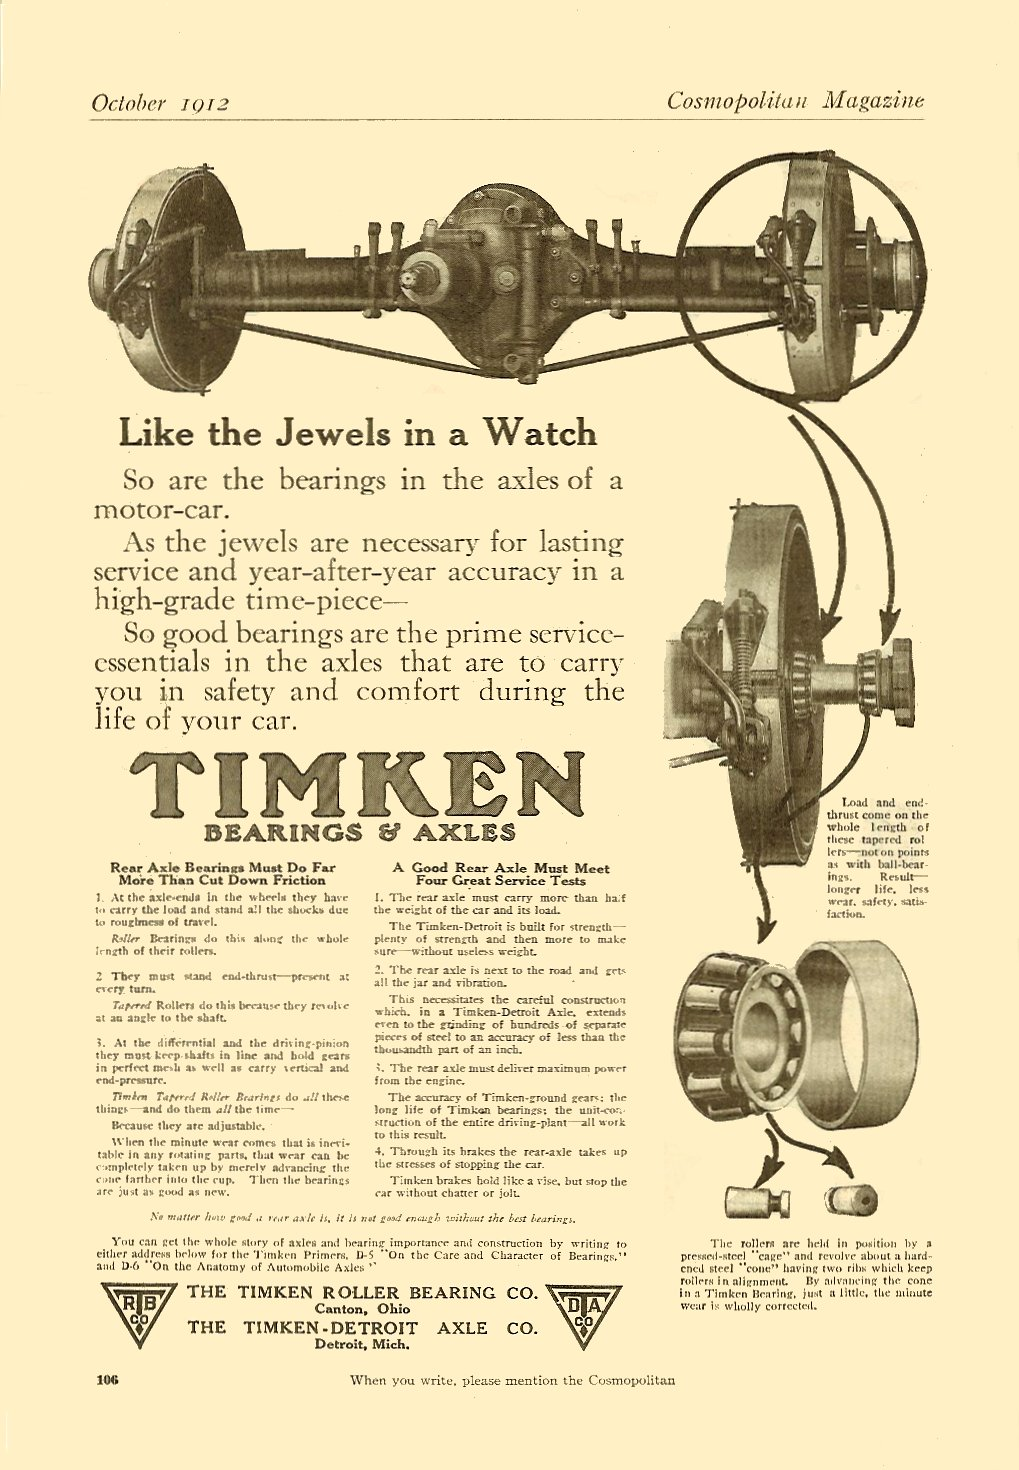 1912 10 TIMKEN Bearings & Axles October 1912 Cosmopolitan Magazine 6.75″x9.75″ page 106